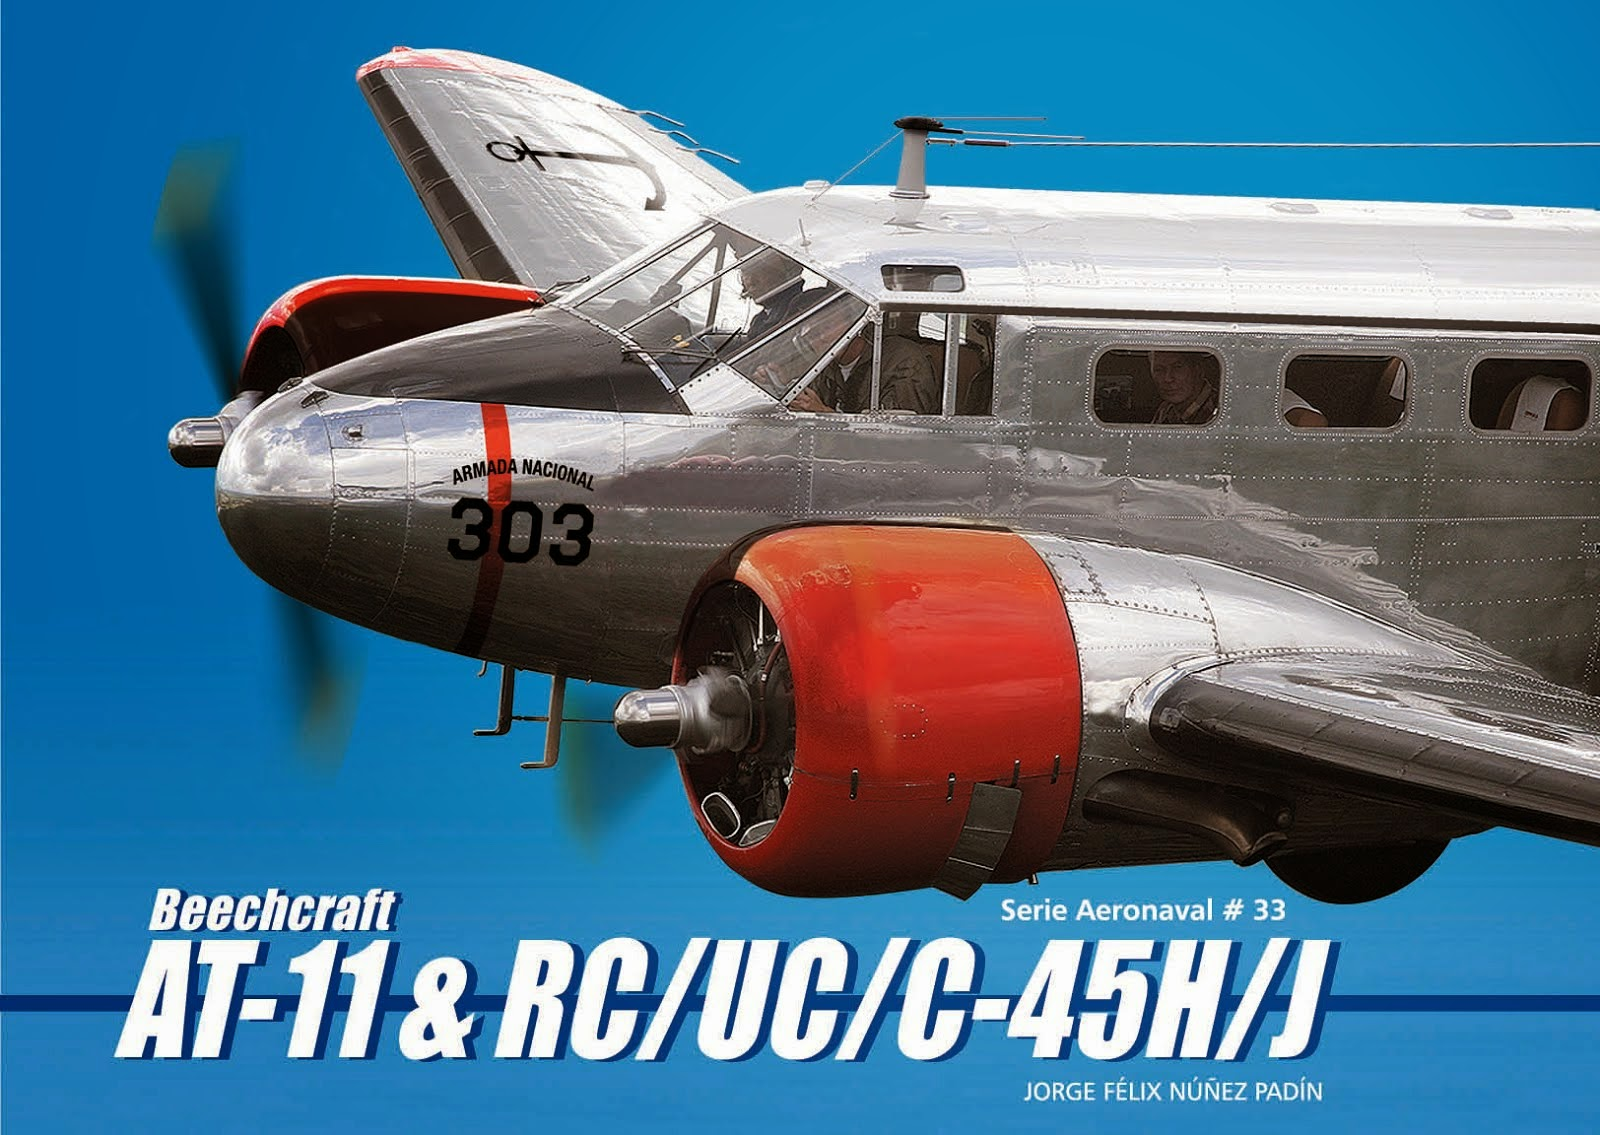 "Serie Aeronaval N°33 ""Beechcraft AT-11 & RC/UC/C-45H/J"""